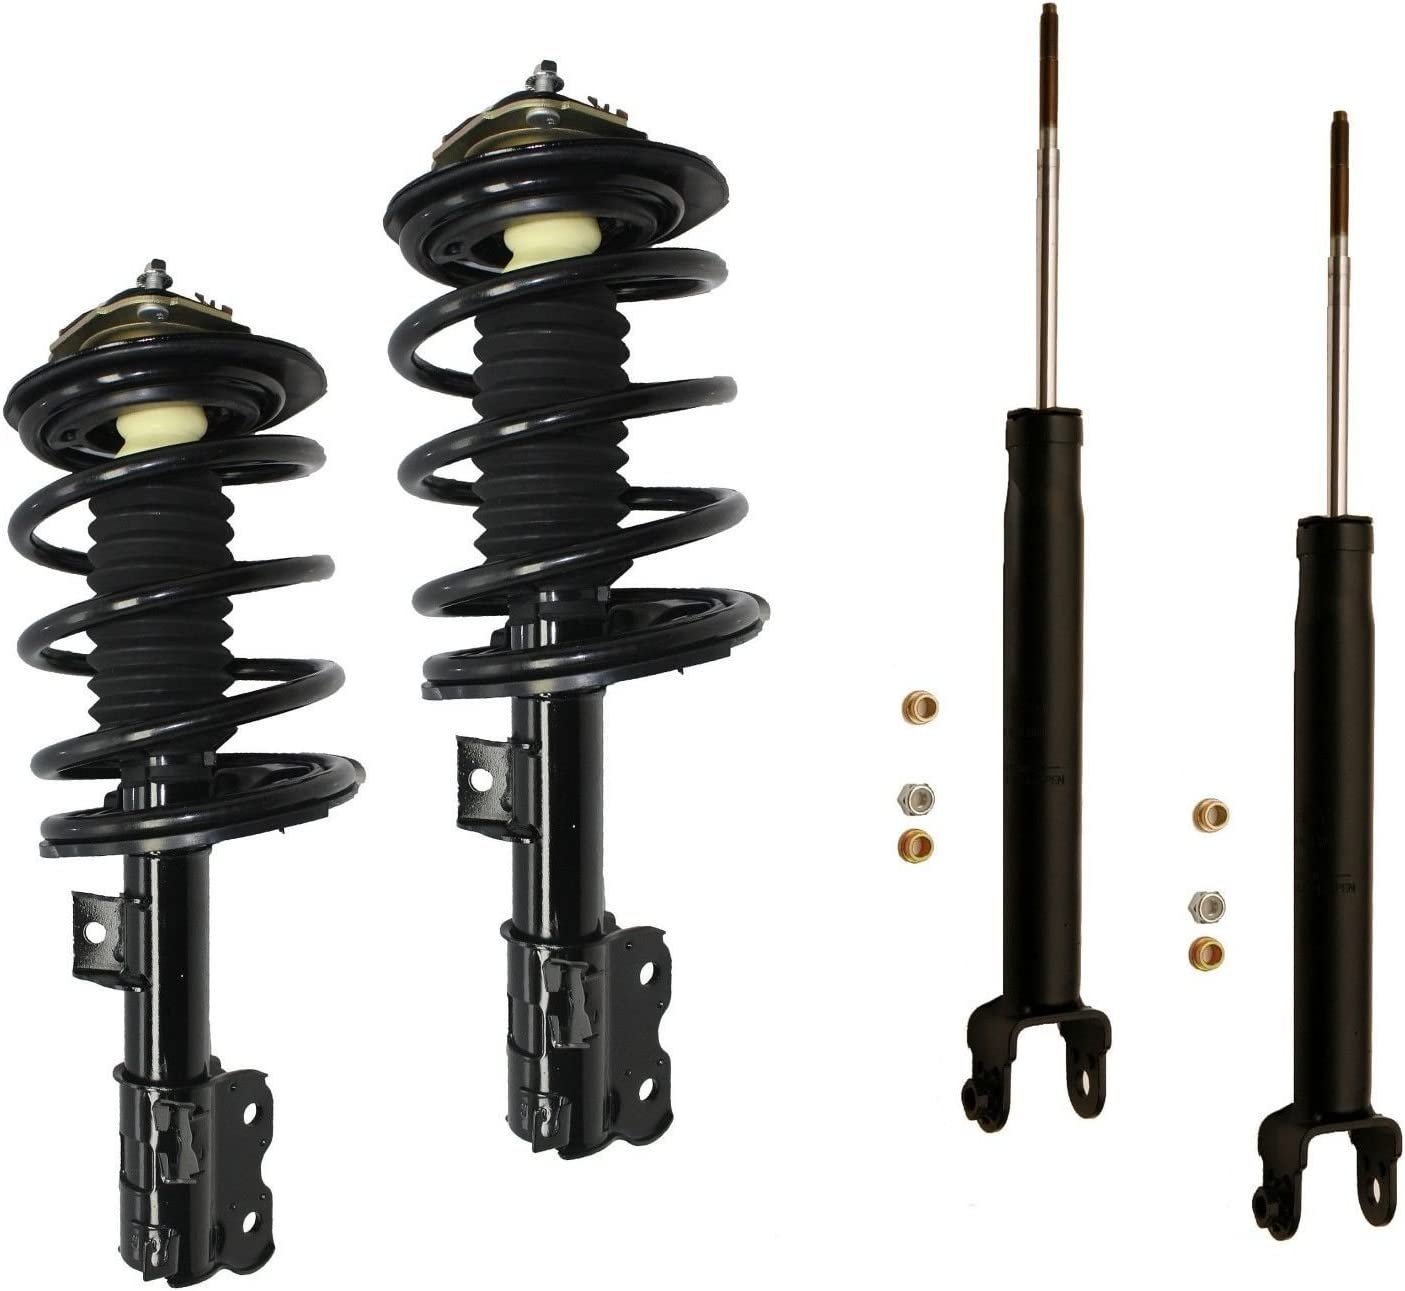 DTA 70024 Full Set 2 Front and online shop Moun Some reservation Struts with Complete Springs